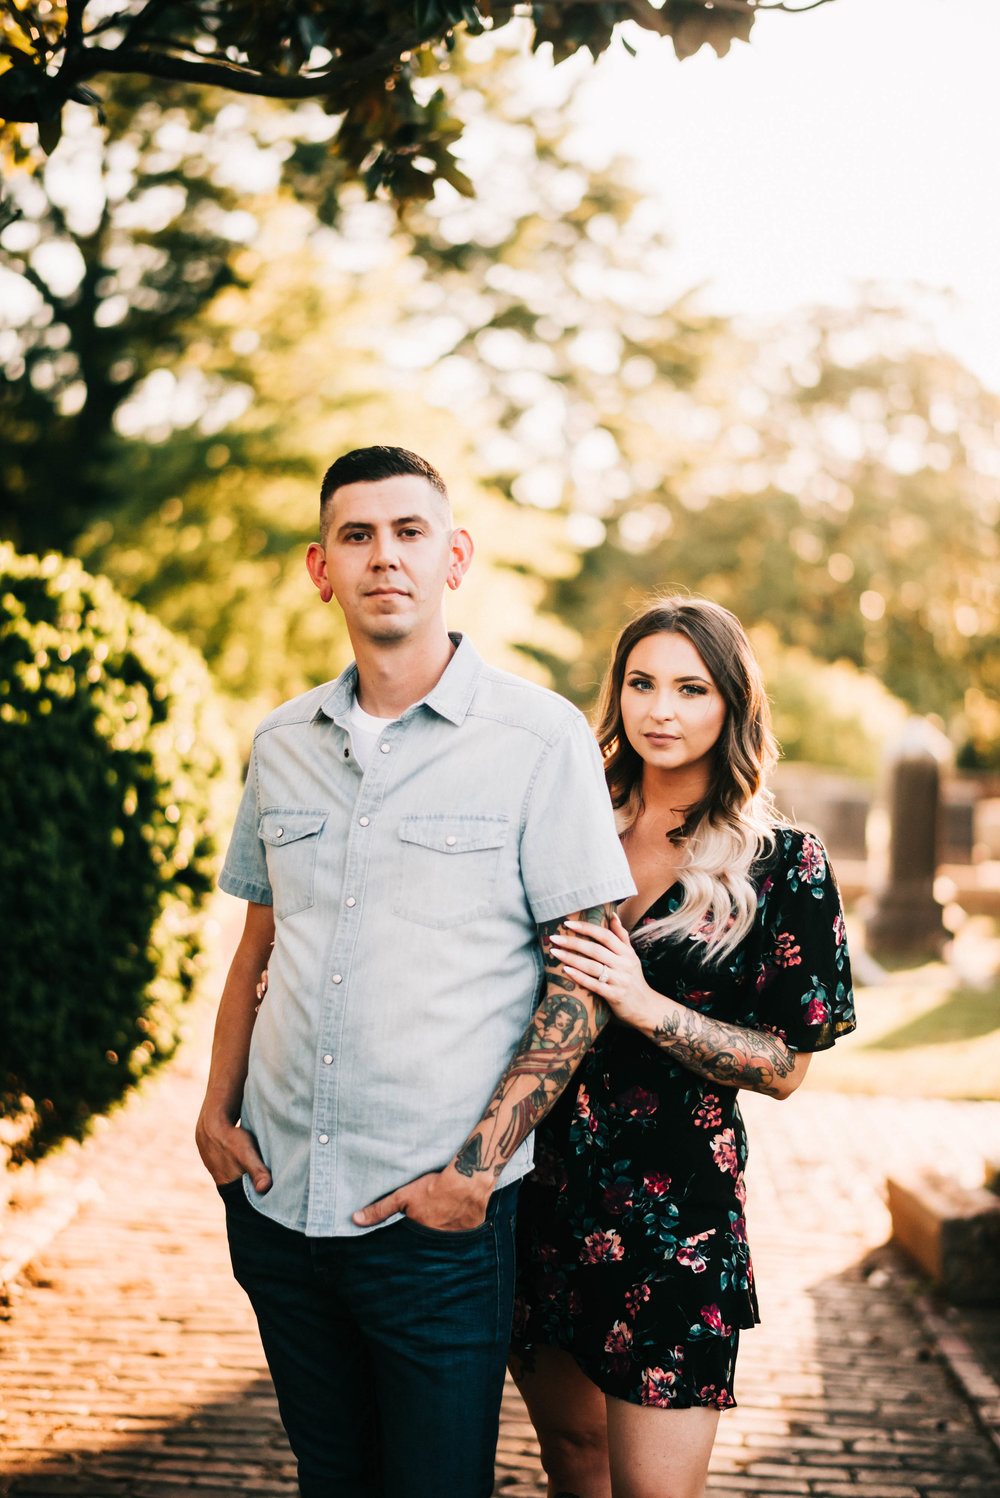 atlanta georgia san francisco california bay area sf oakland wedding portrait adventure engageement nontraditional tattooed couple photographer-111.jpg